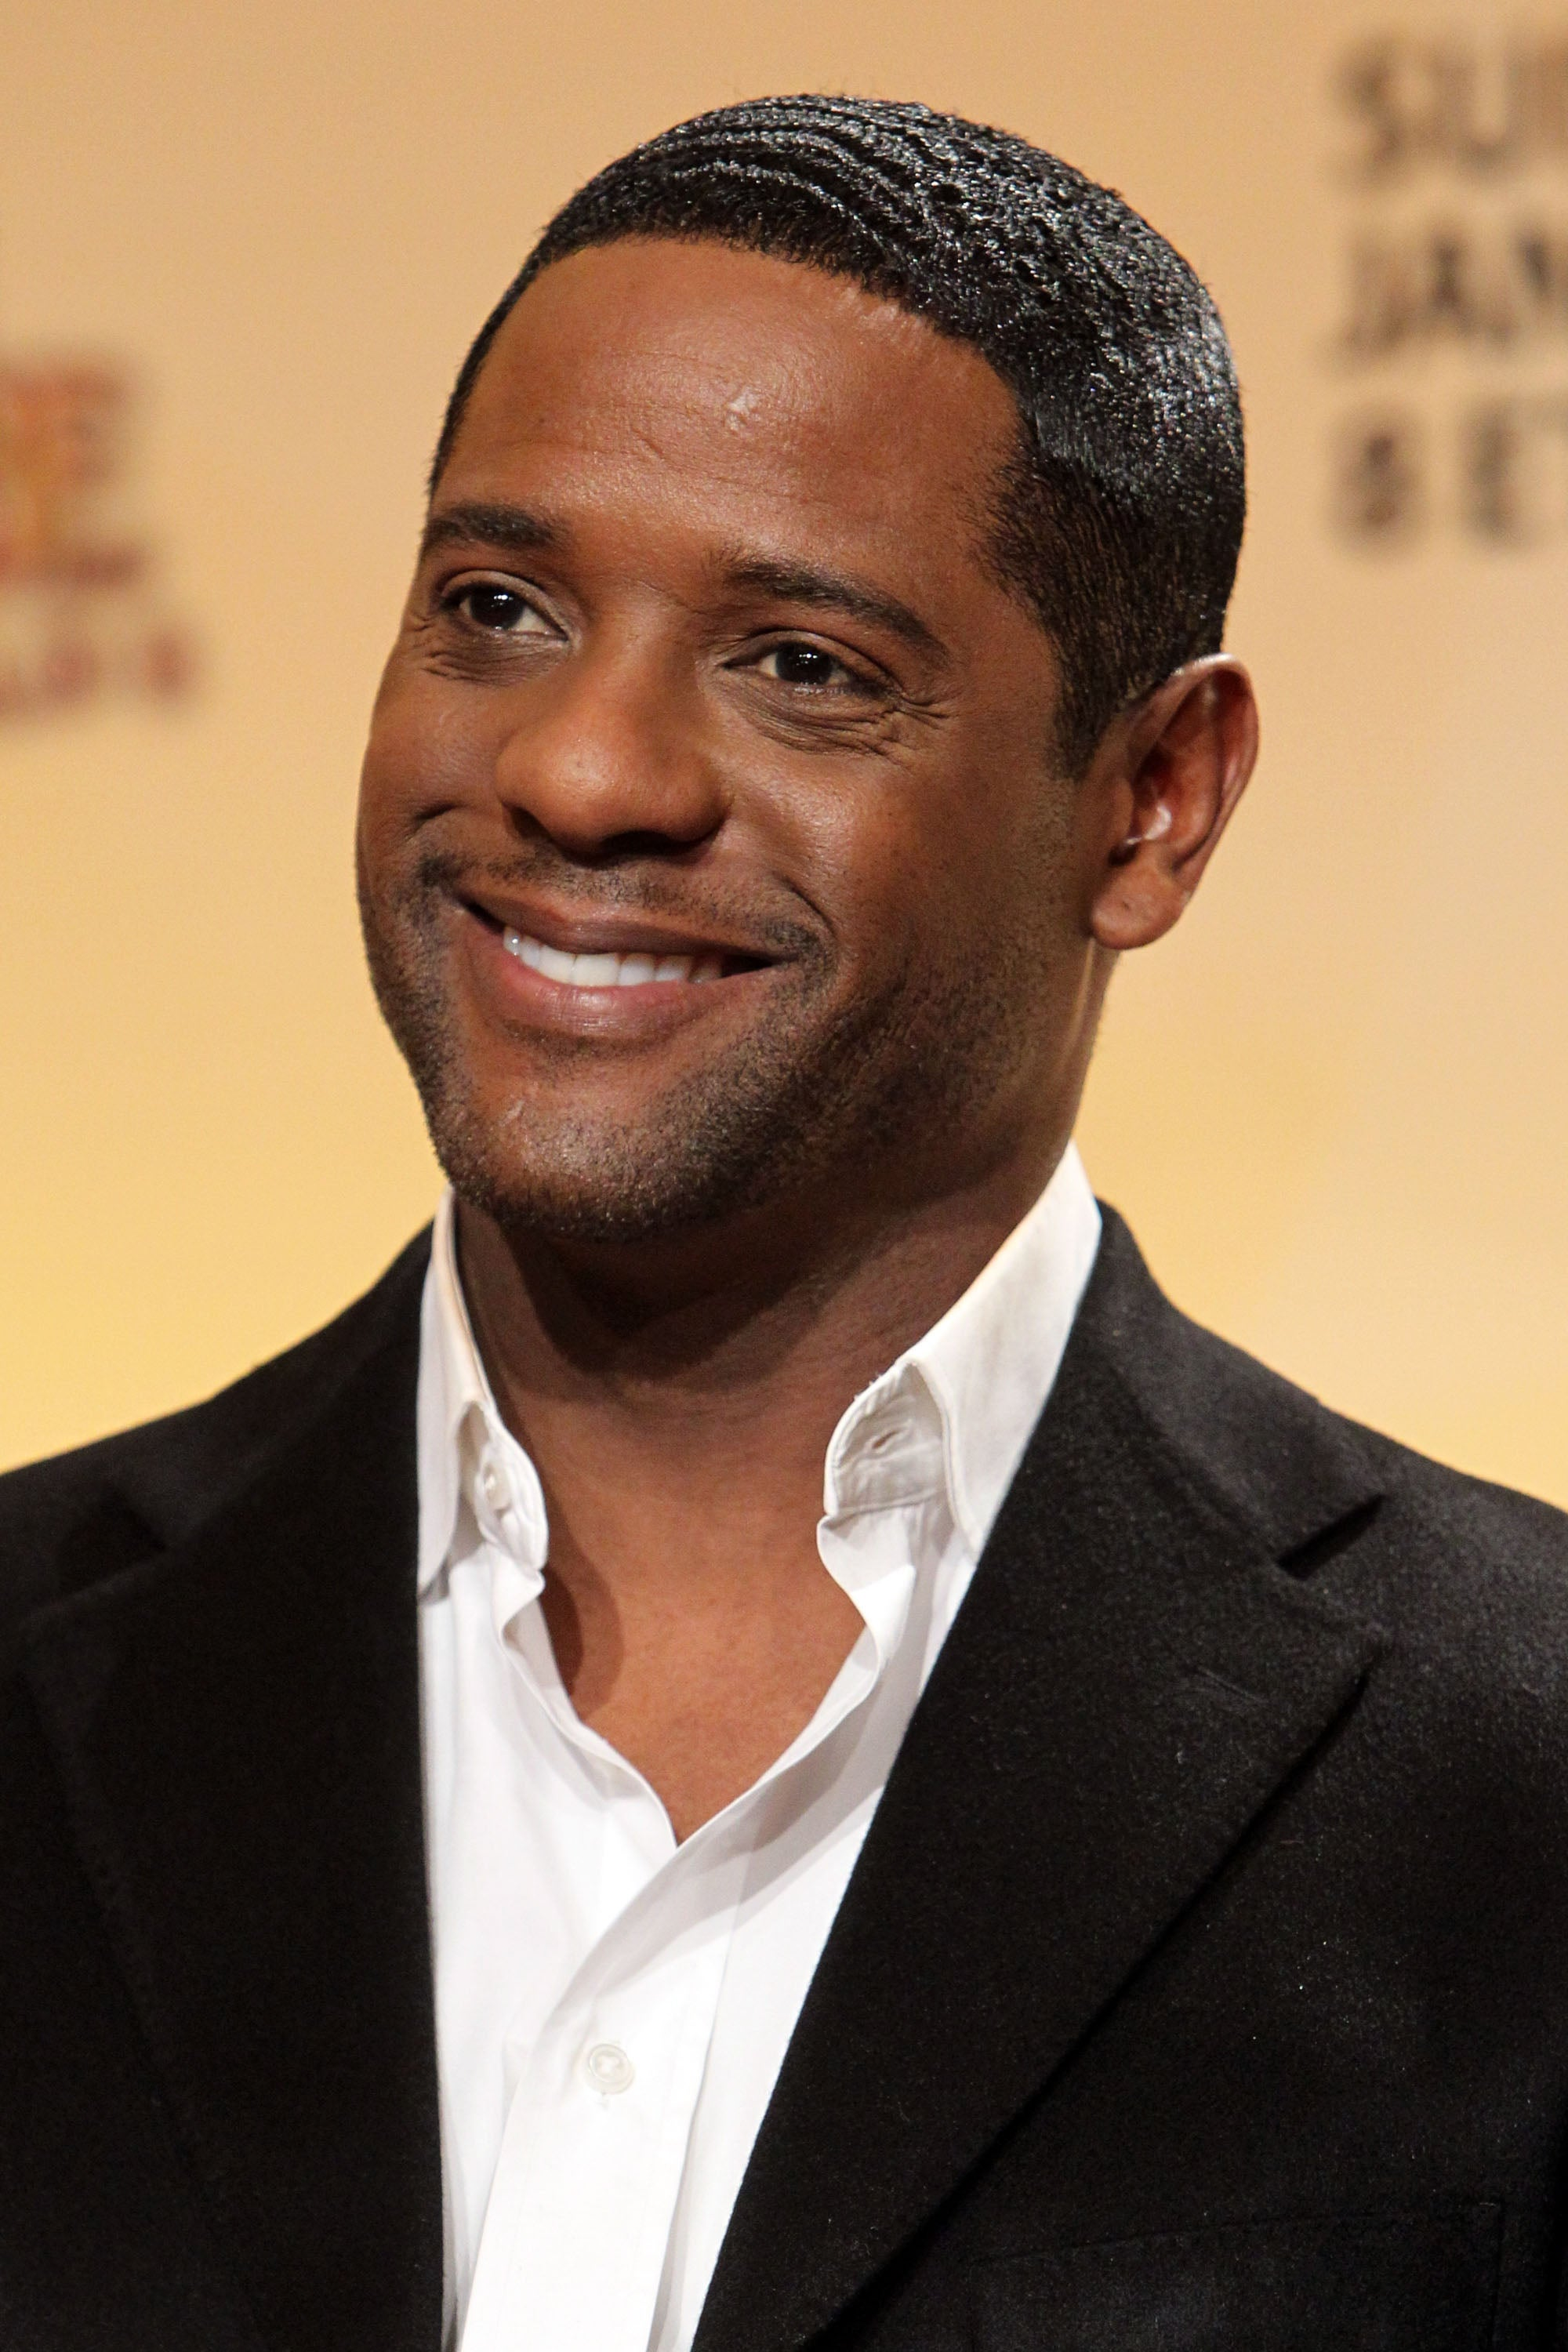 EXCLUSIVE: Blair Underwood Reveals His Love for Comedy, Theater and the Circus